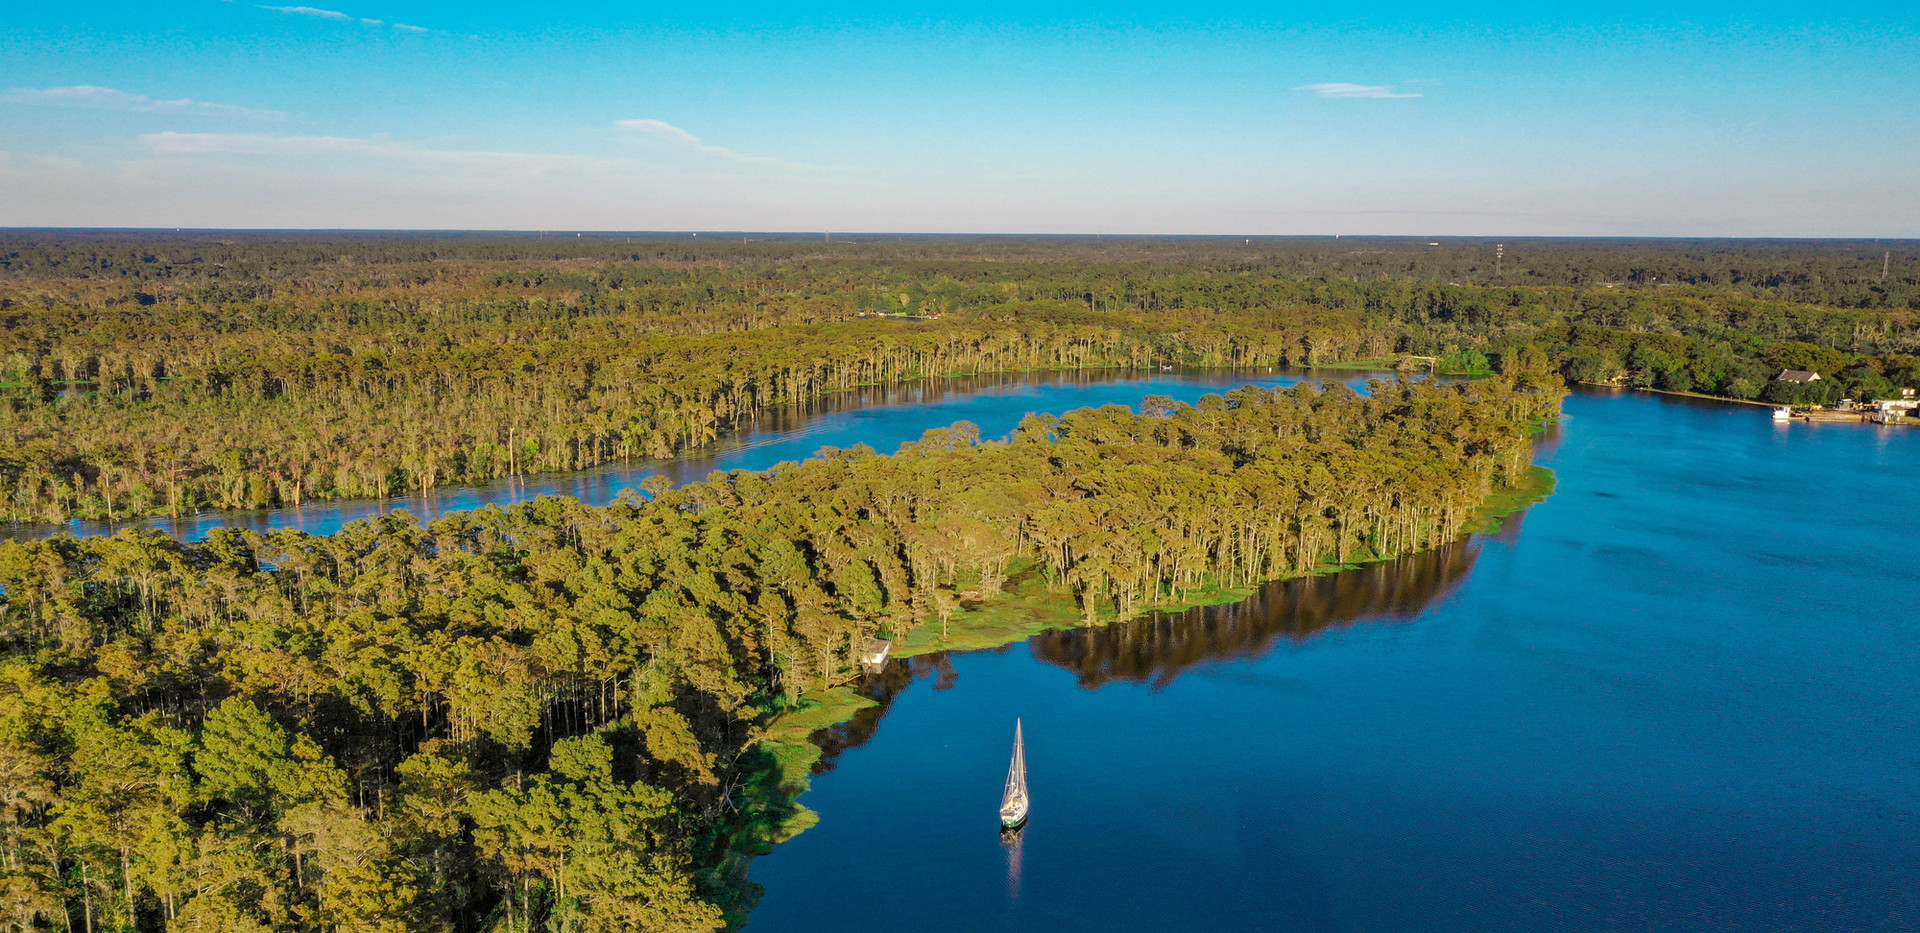 Aerial Photography, Tchefuncte River, Madisonville, Louisiana